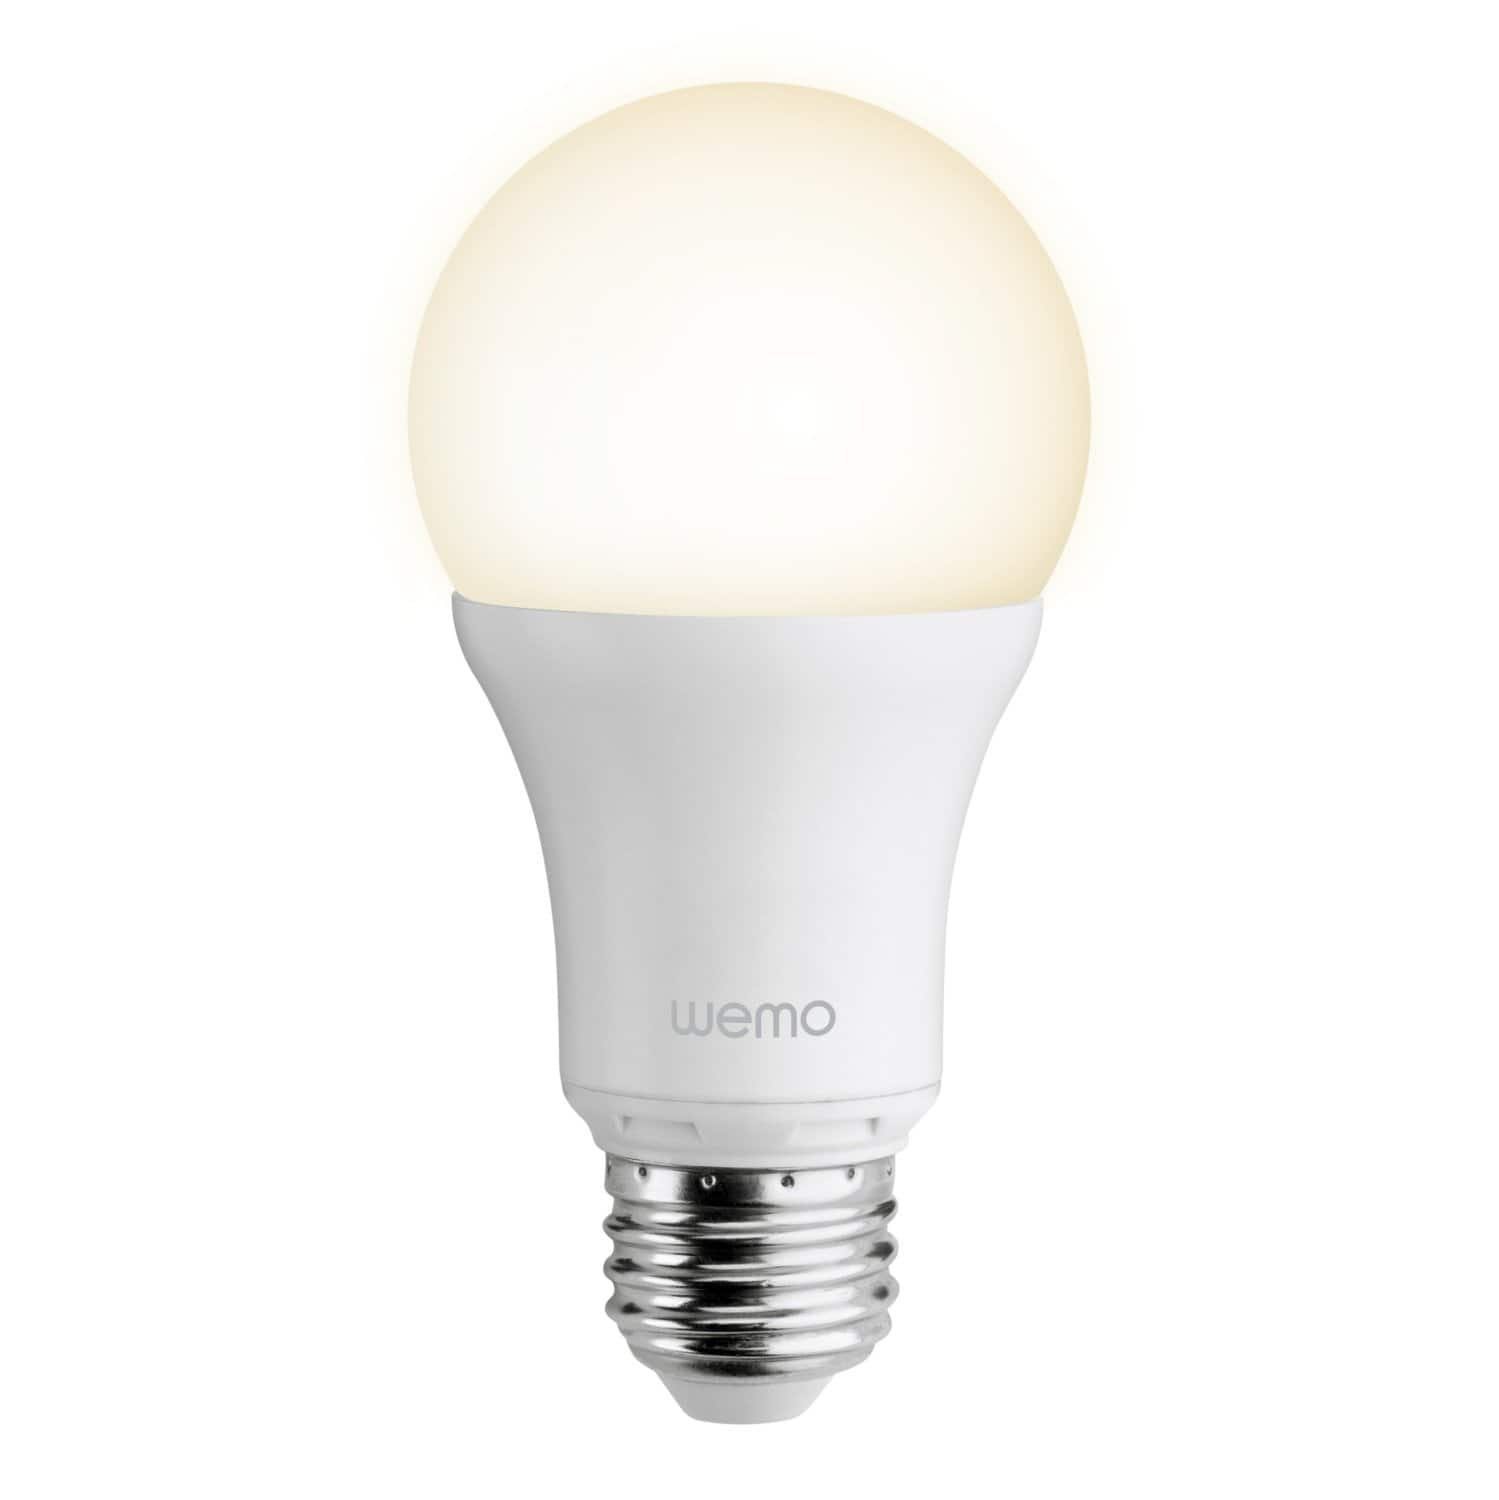 Frys Email Exclusives: Belkin WEMO Smart LED Bulb  $10 & More + Free S&H (w/ Email Code)